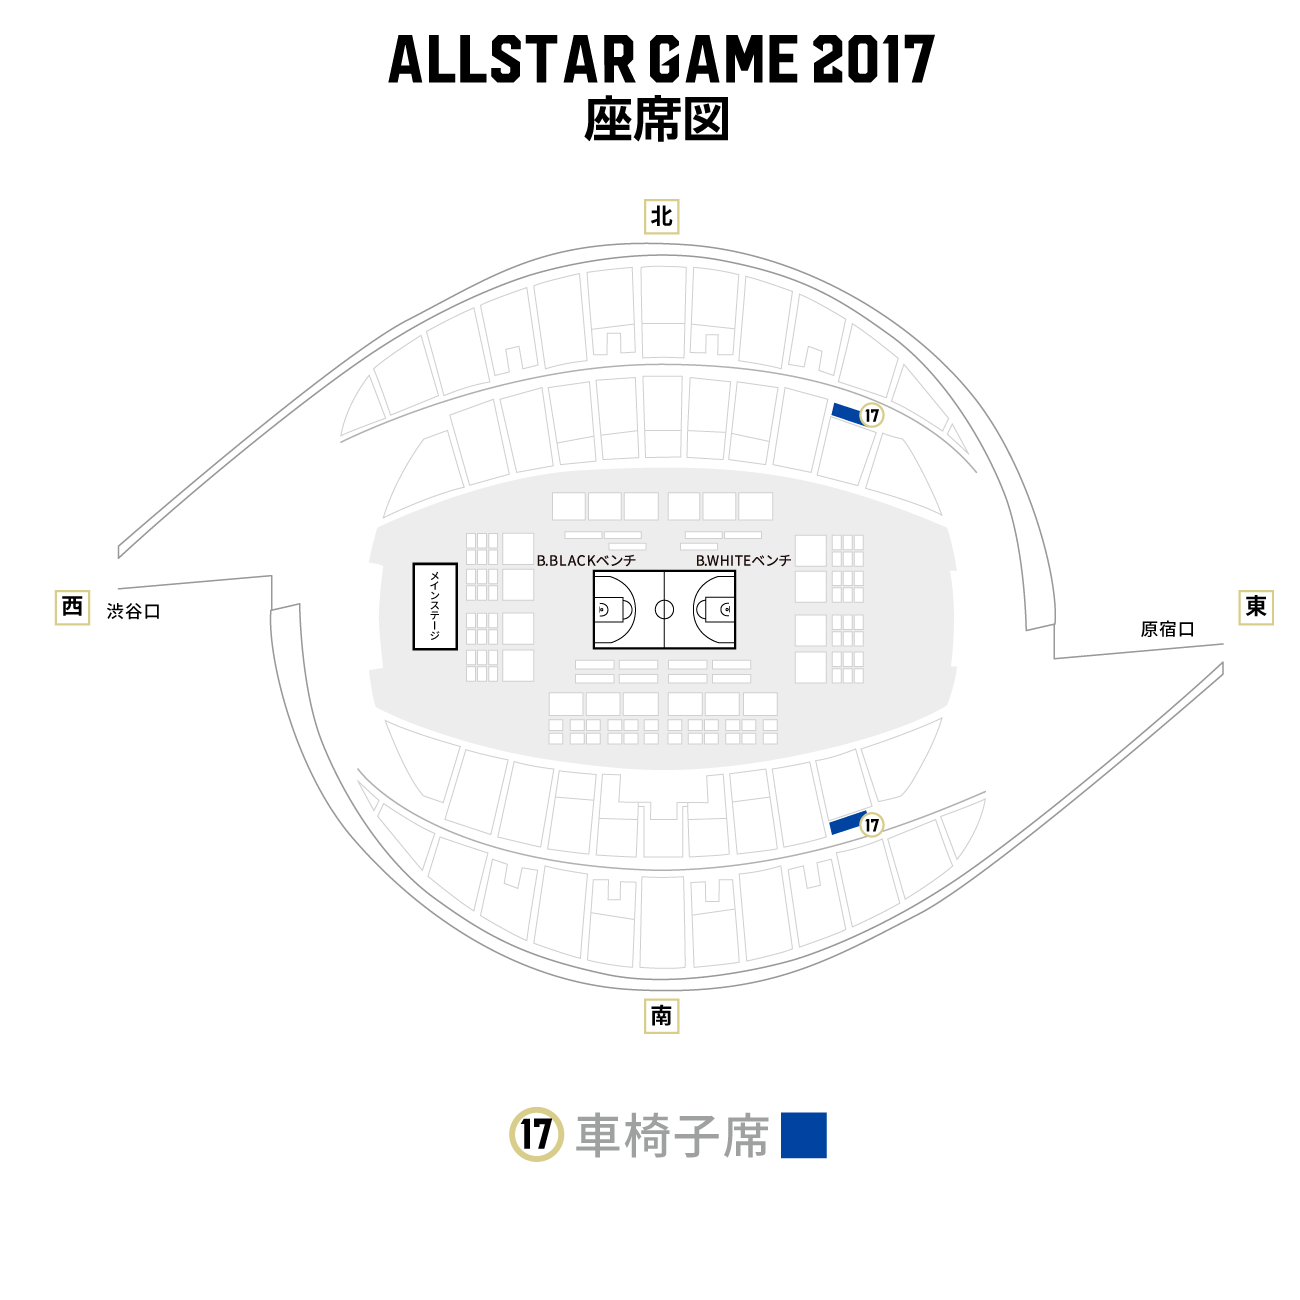 seatview_seat_17.png